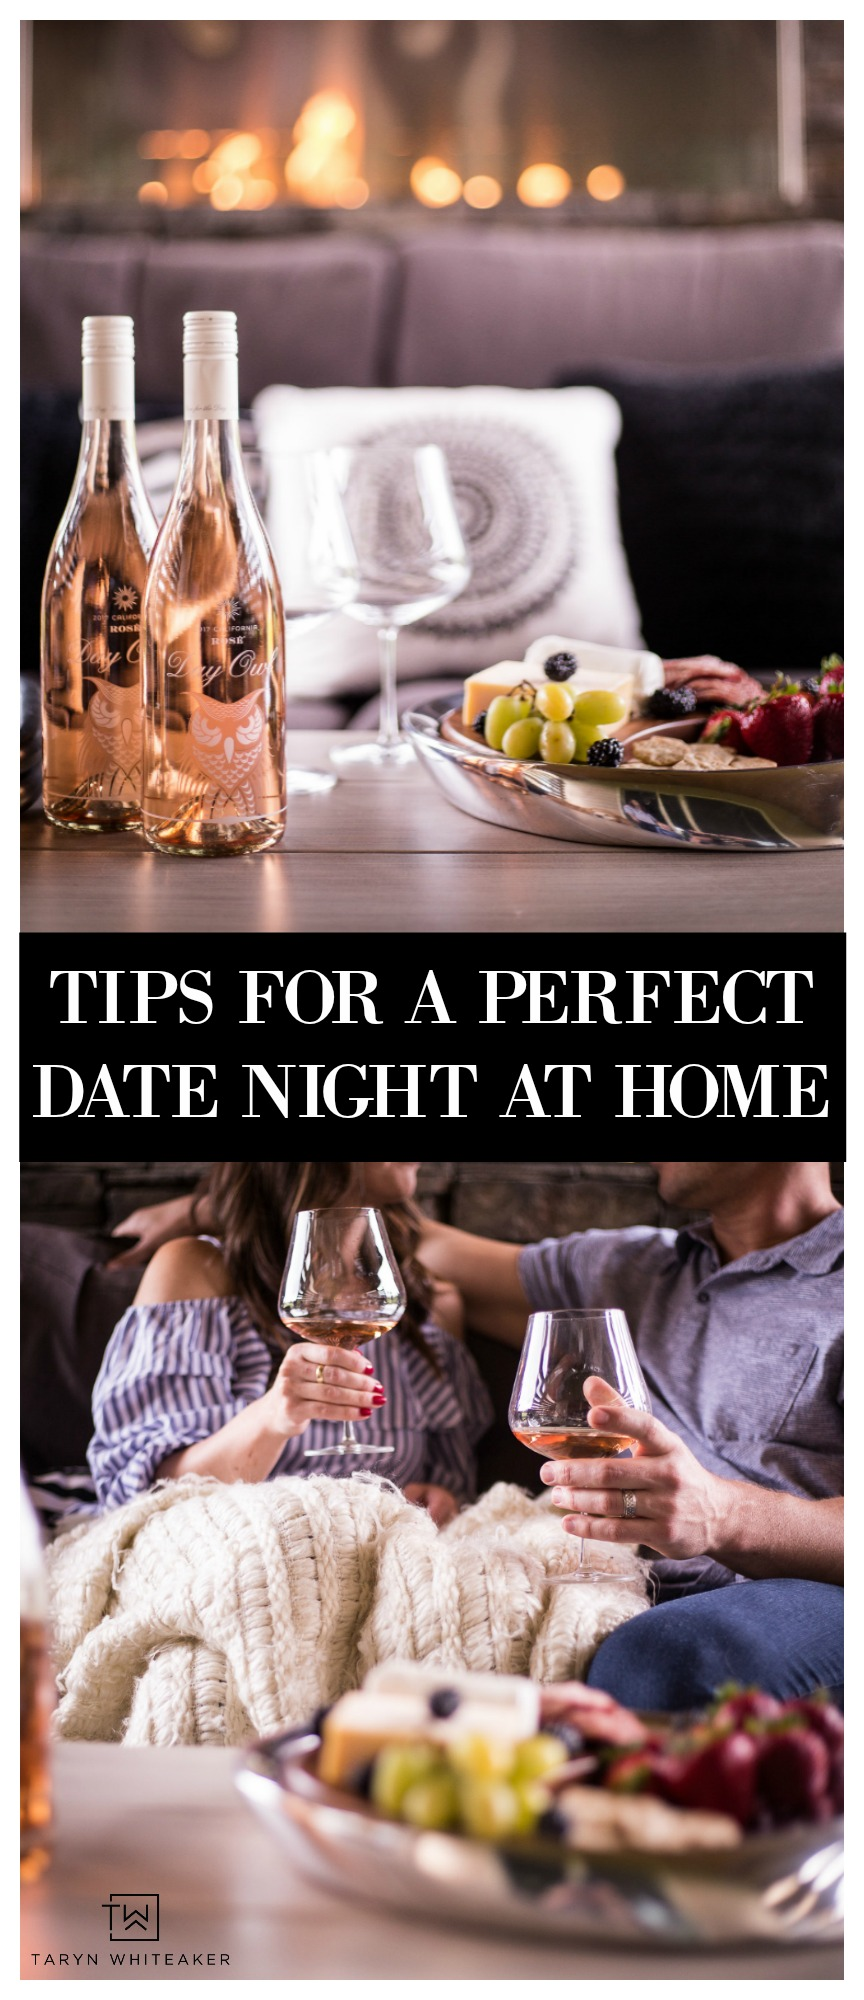 Cozy up by the fire with nice beverage and yummy food for a perfect date night at home with your significant other!